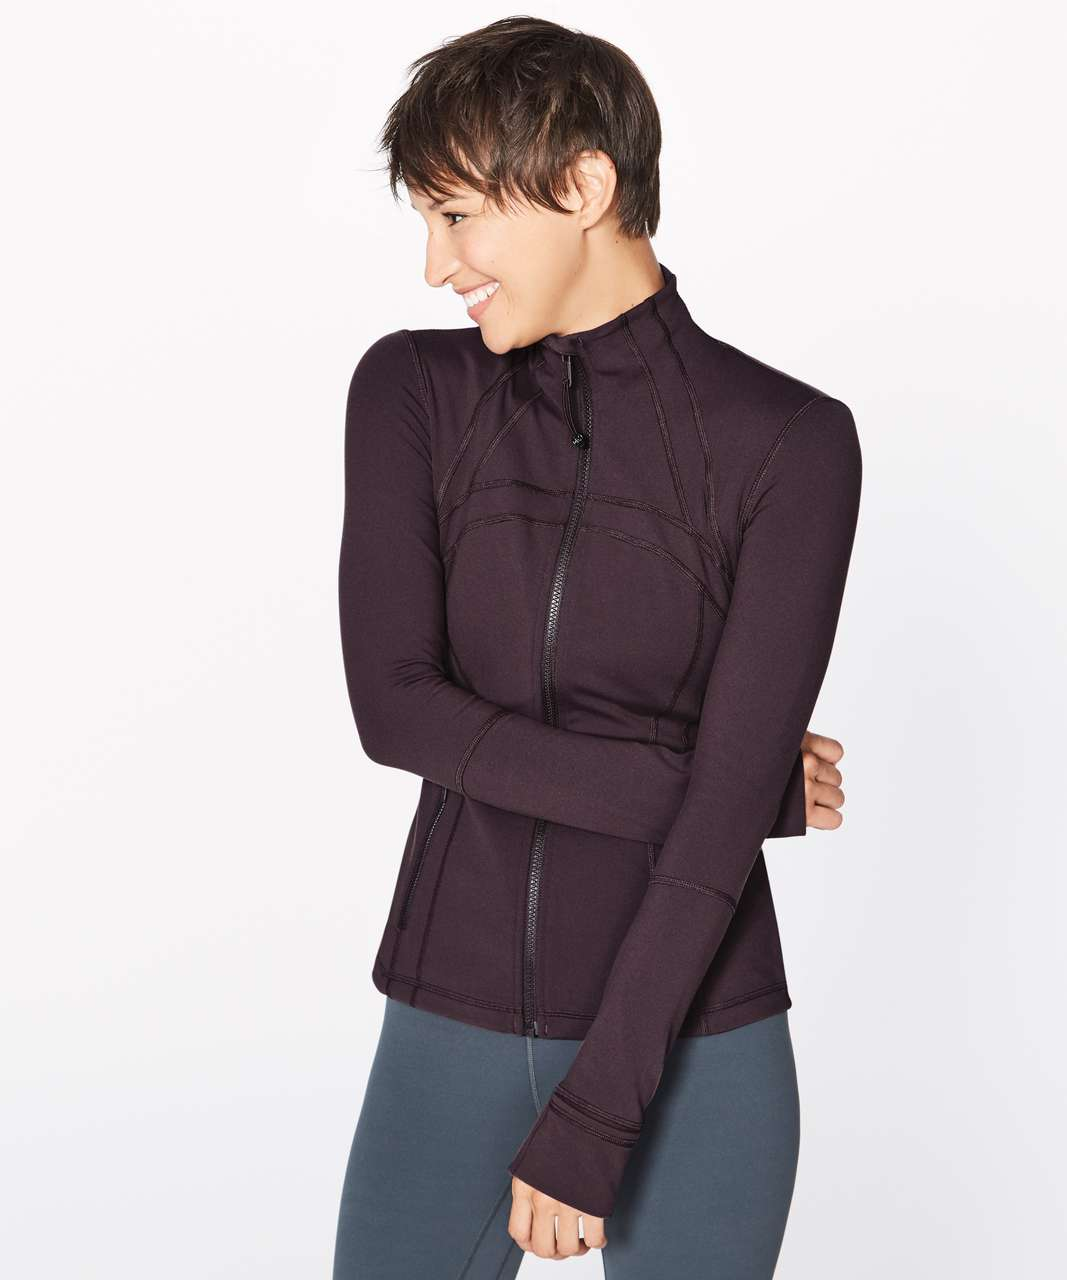 Lululemon Define Jacket - Pelt